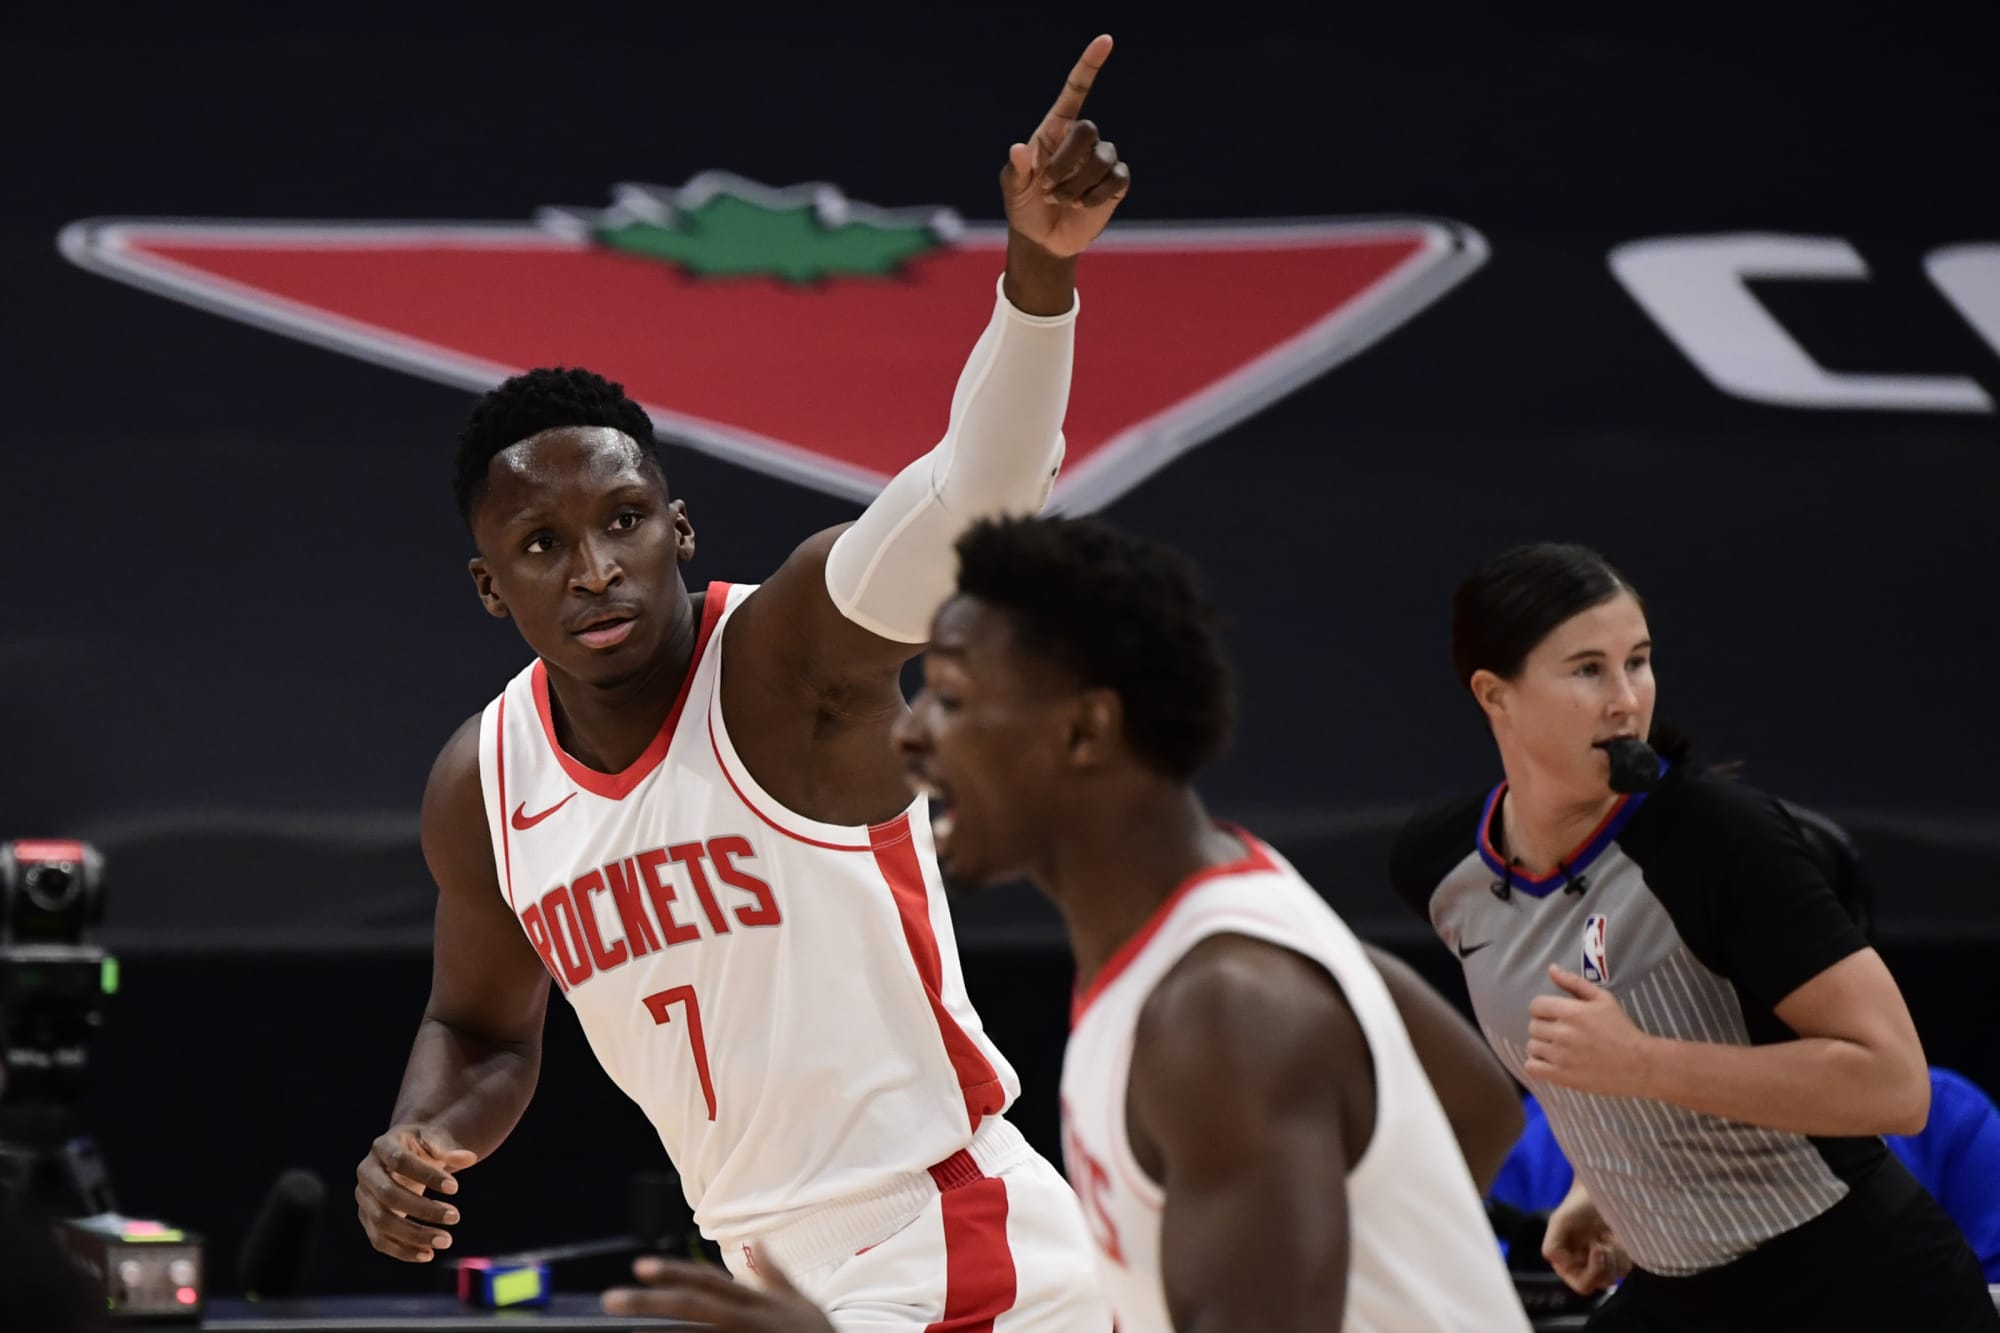 Toronto Raptors: Masai Ujrii can't target Victor Oladipo after latest injury